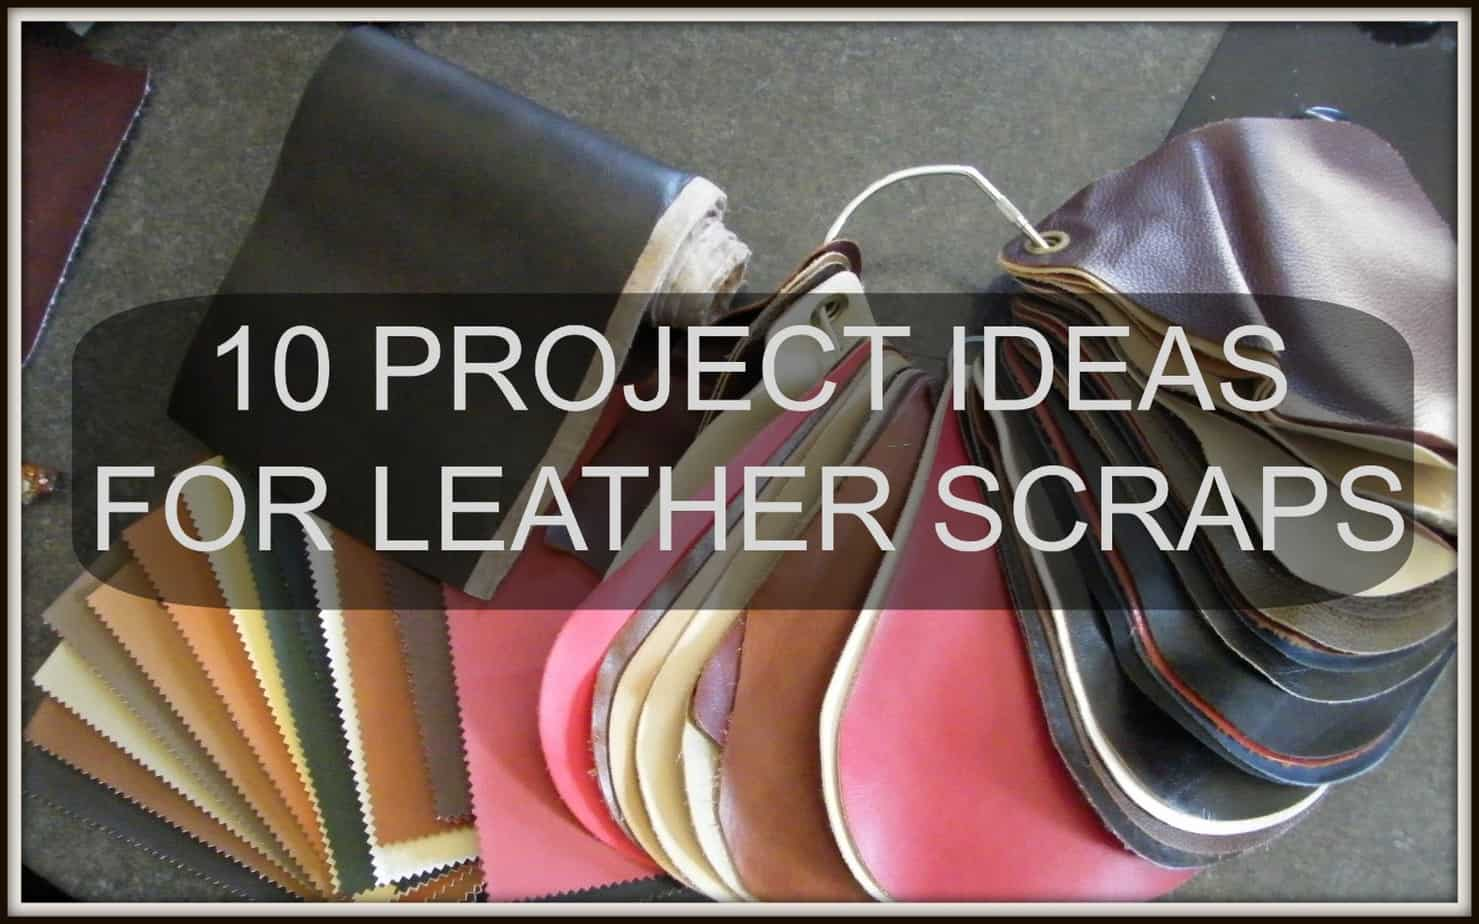 10 project ideas for leather scraps